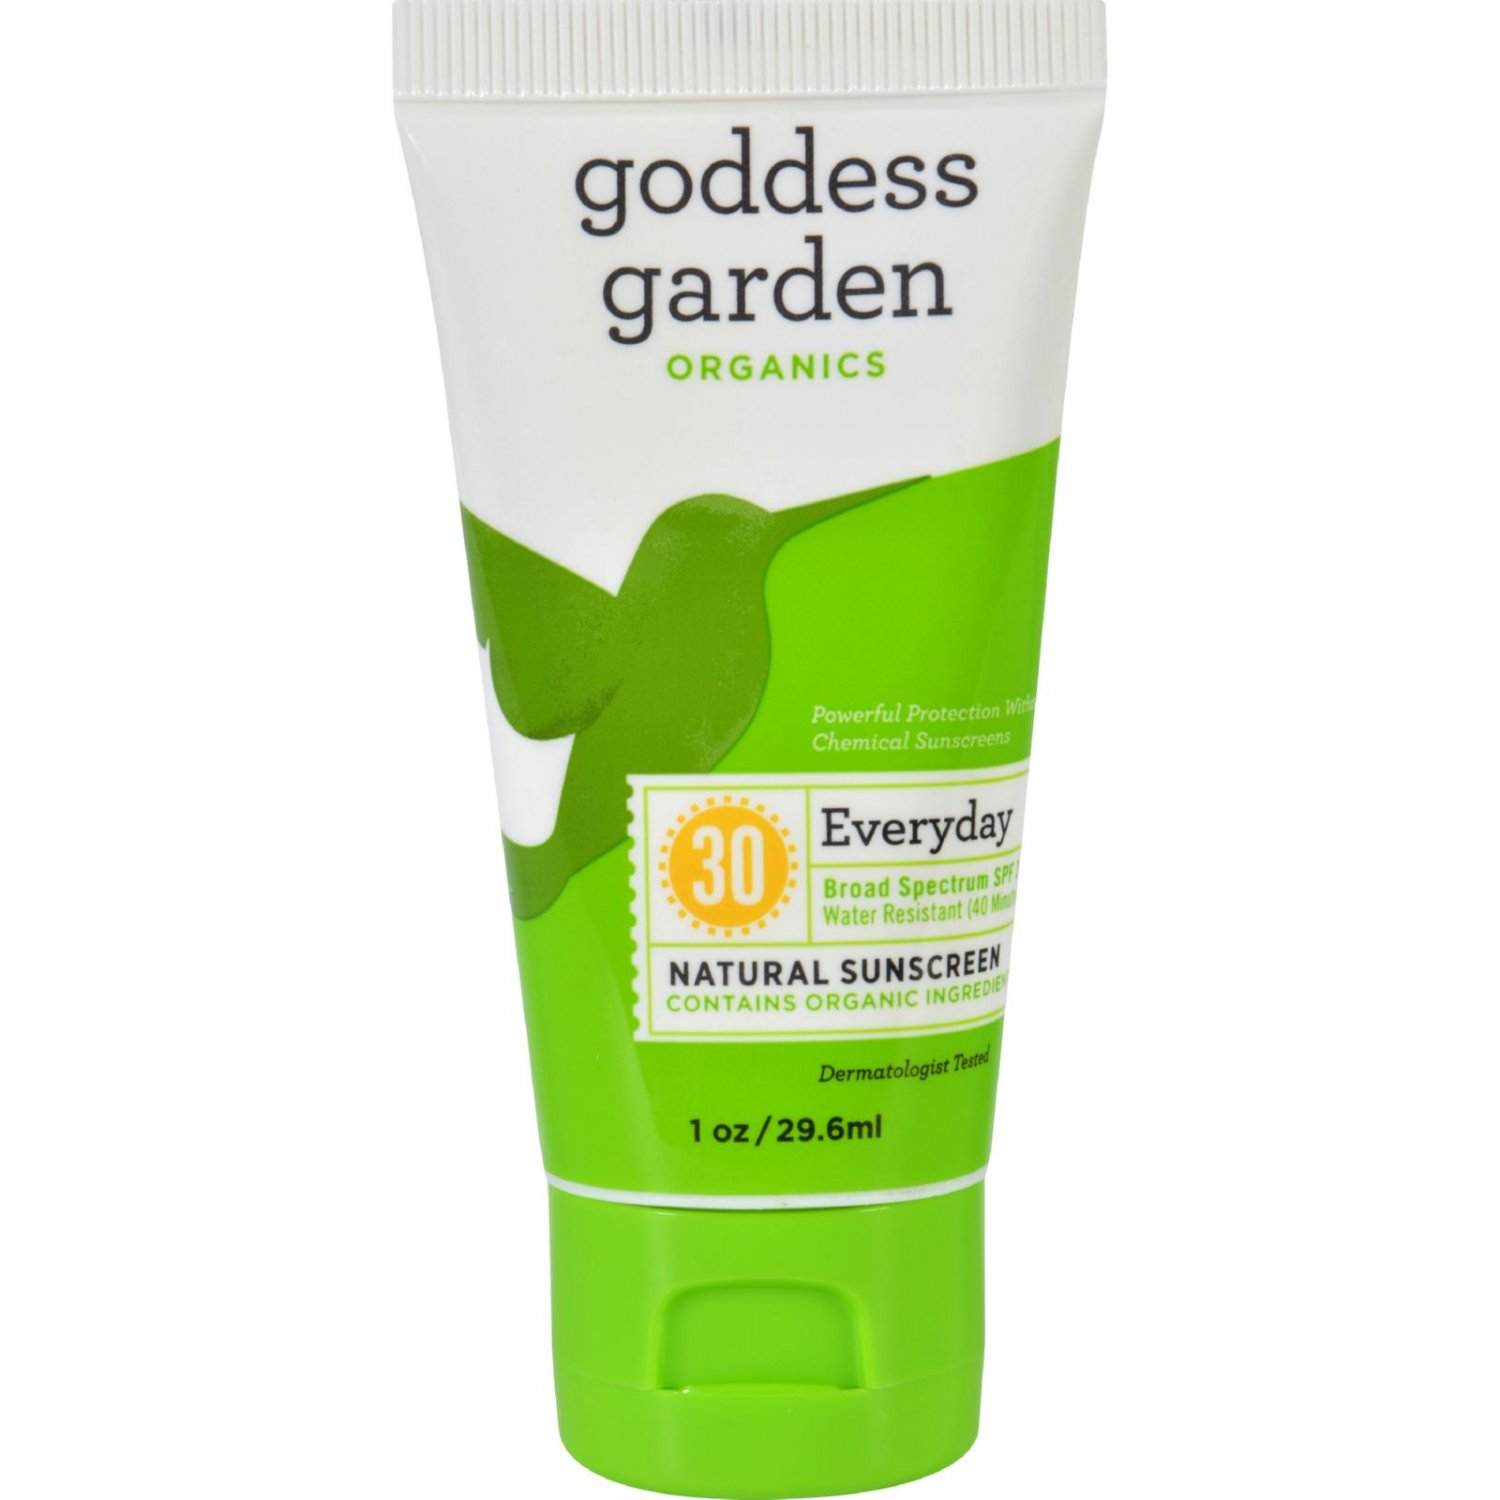 Goddess Garden Sunscreen - Counter Display - Organic - SPF 30 - Tube - 1 oz